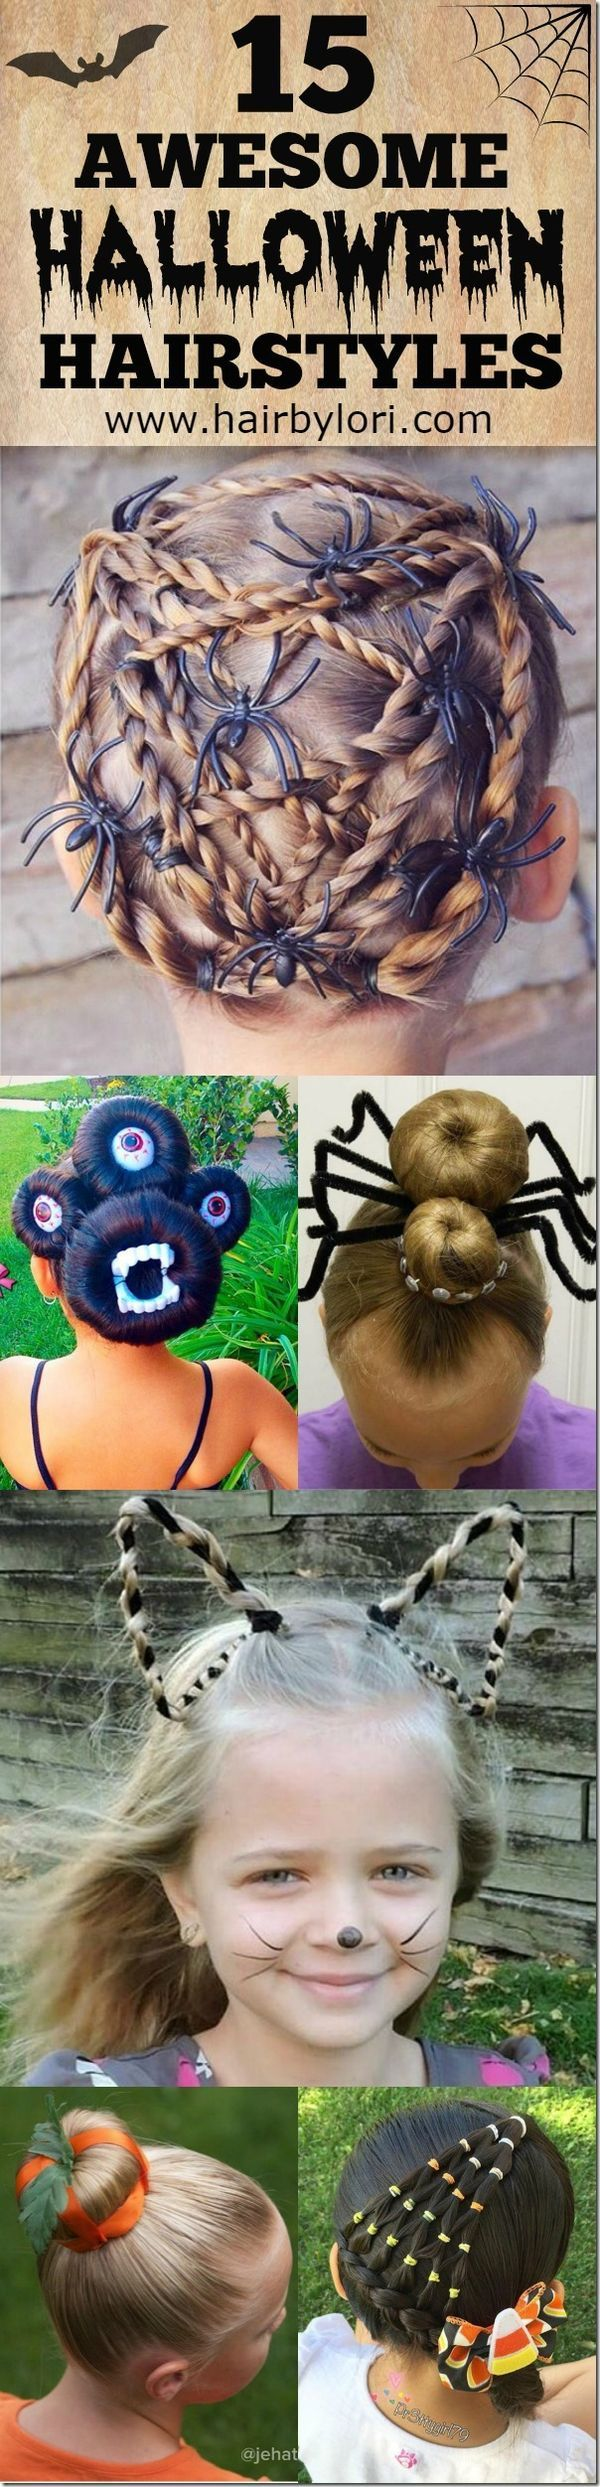 Hairstyle For Women Over   Pinterest  Halloween hairstyles Fun